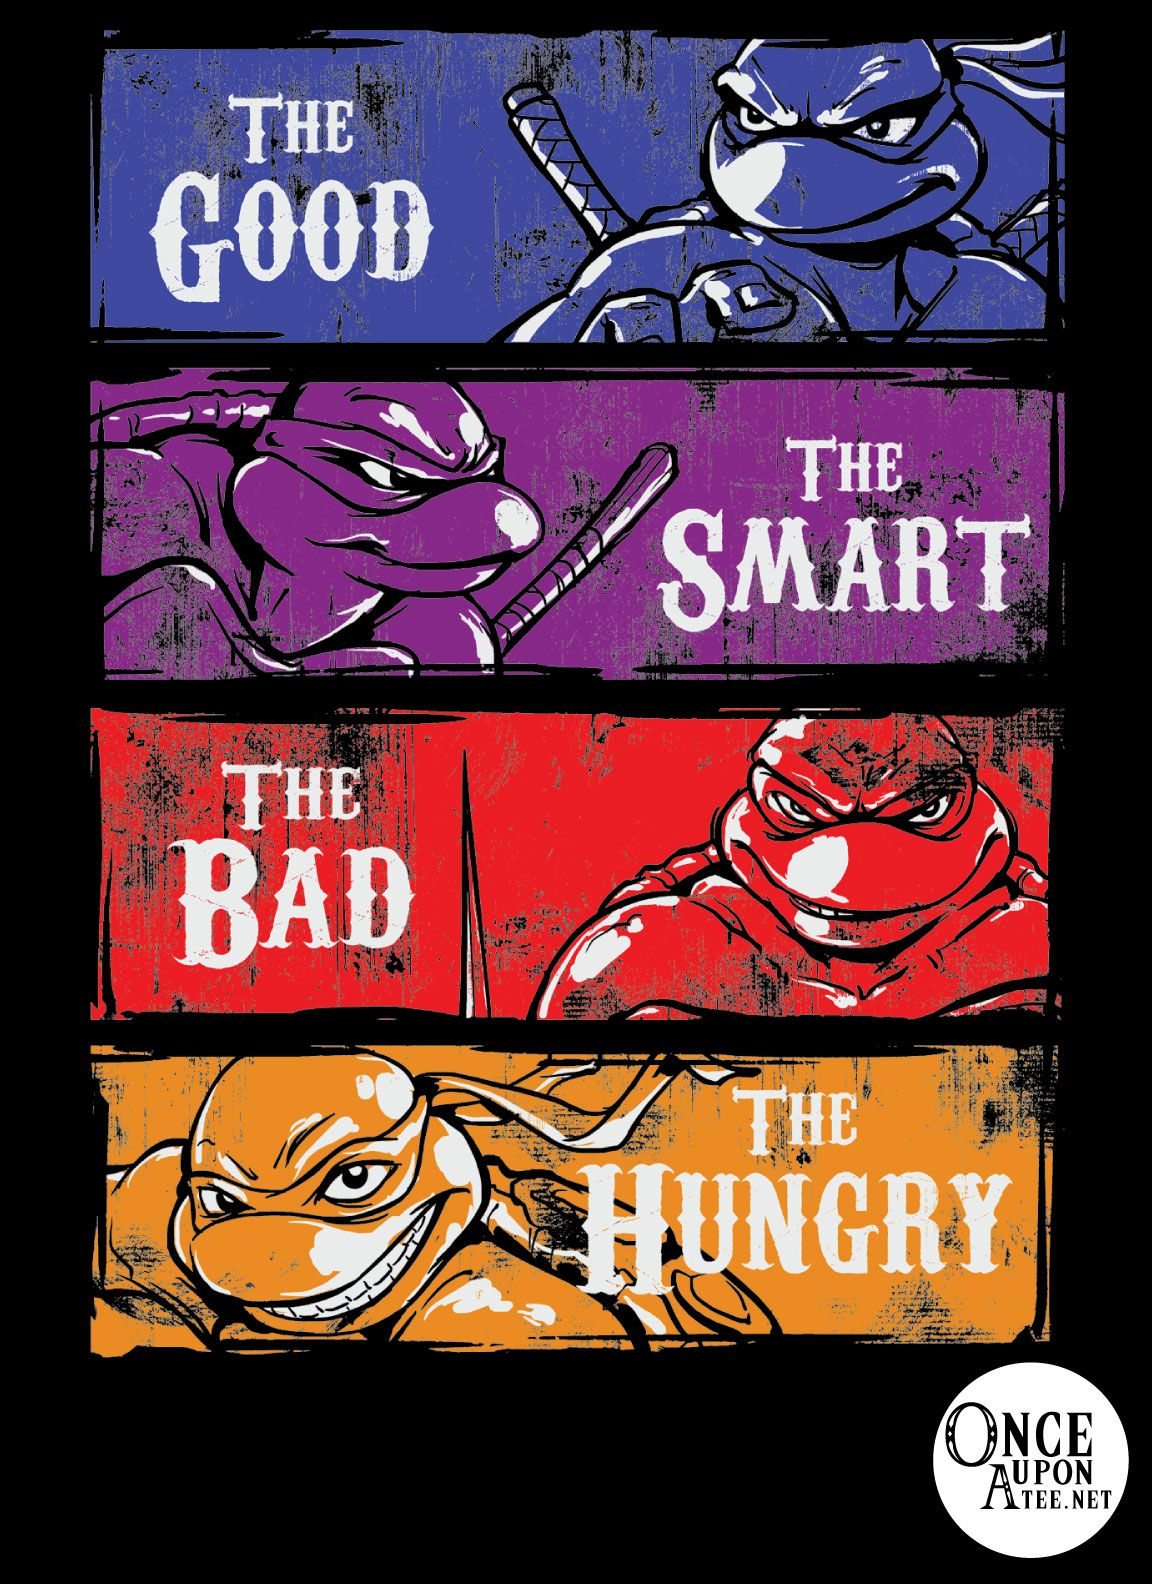 """""""The Good, the Smart, the Bad, and the Hungry"""" is available for $12 at http://www.onceuponatee.net this week only! #OUAT #Onceuponatee #TMNT #turtles #ninjaturtles #teenagemutantninjaturtles #shredder #cartoon #apparel #fashion #clothing #sale"""